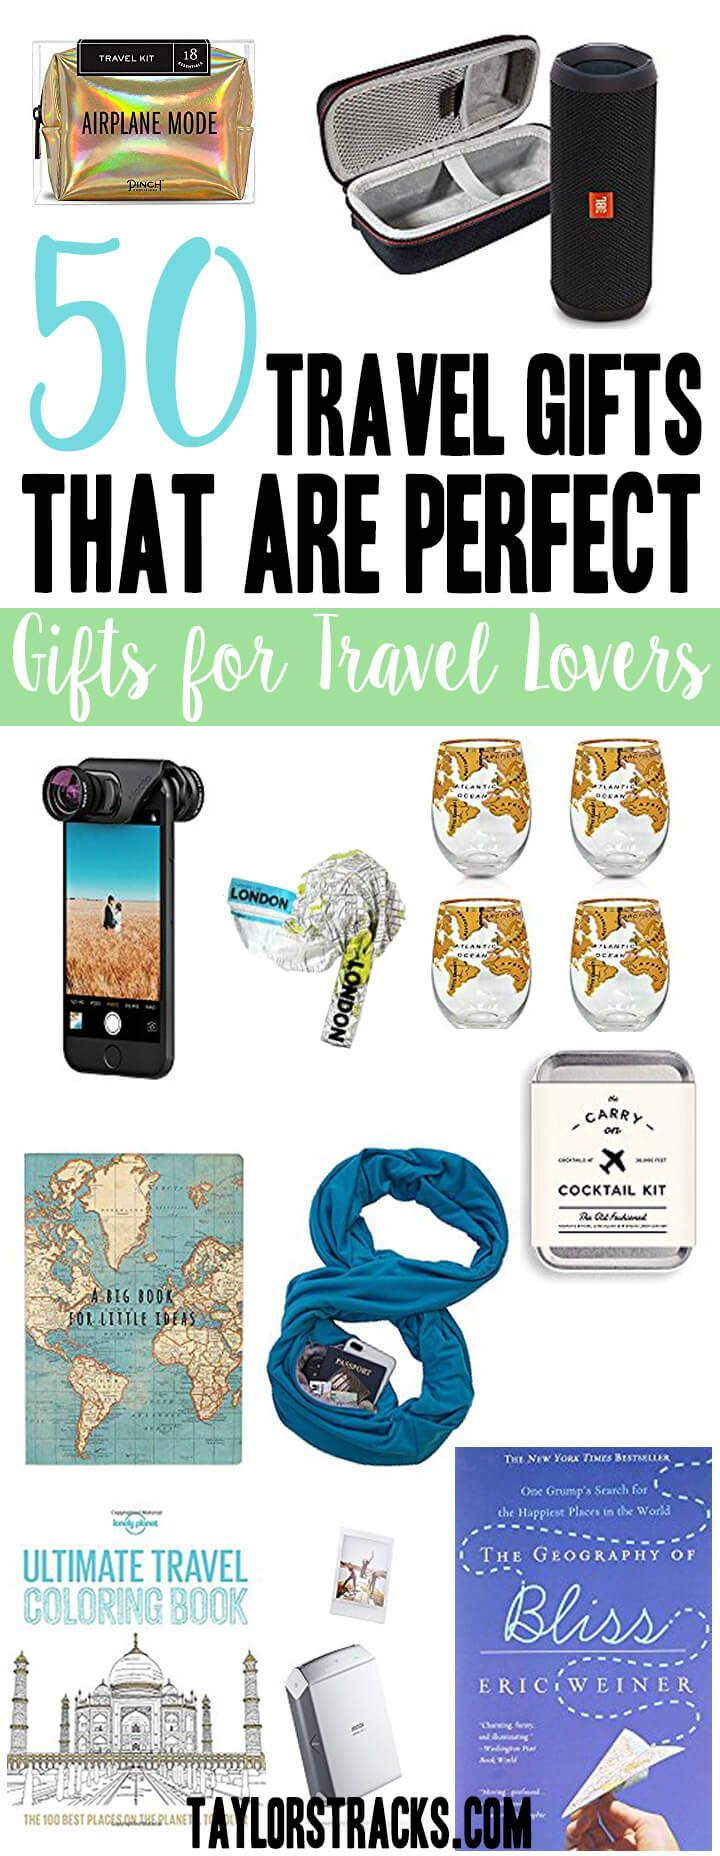 Have no idea what travel gifts to get for the travel lover on your list? Look no further! Click here to get fun, practical and must-have items for every traveler.